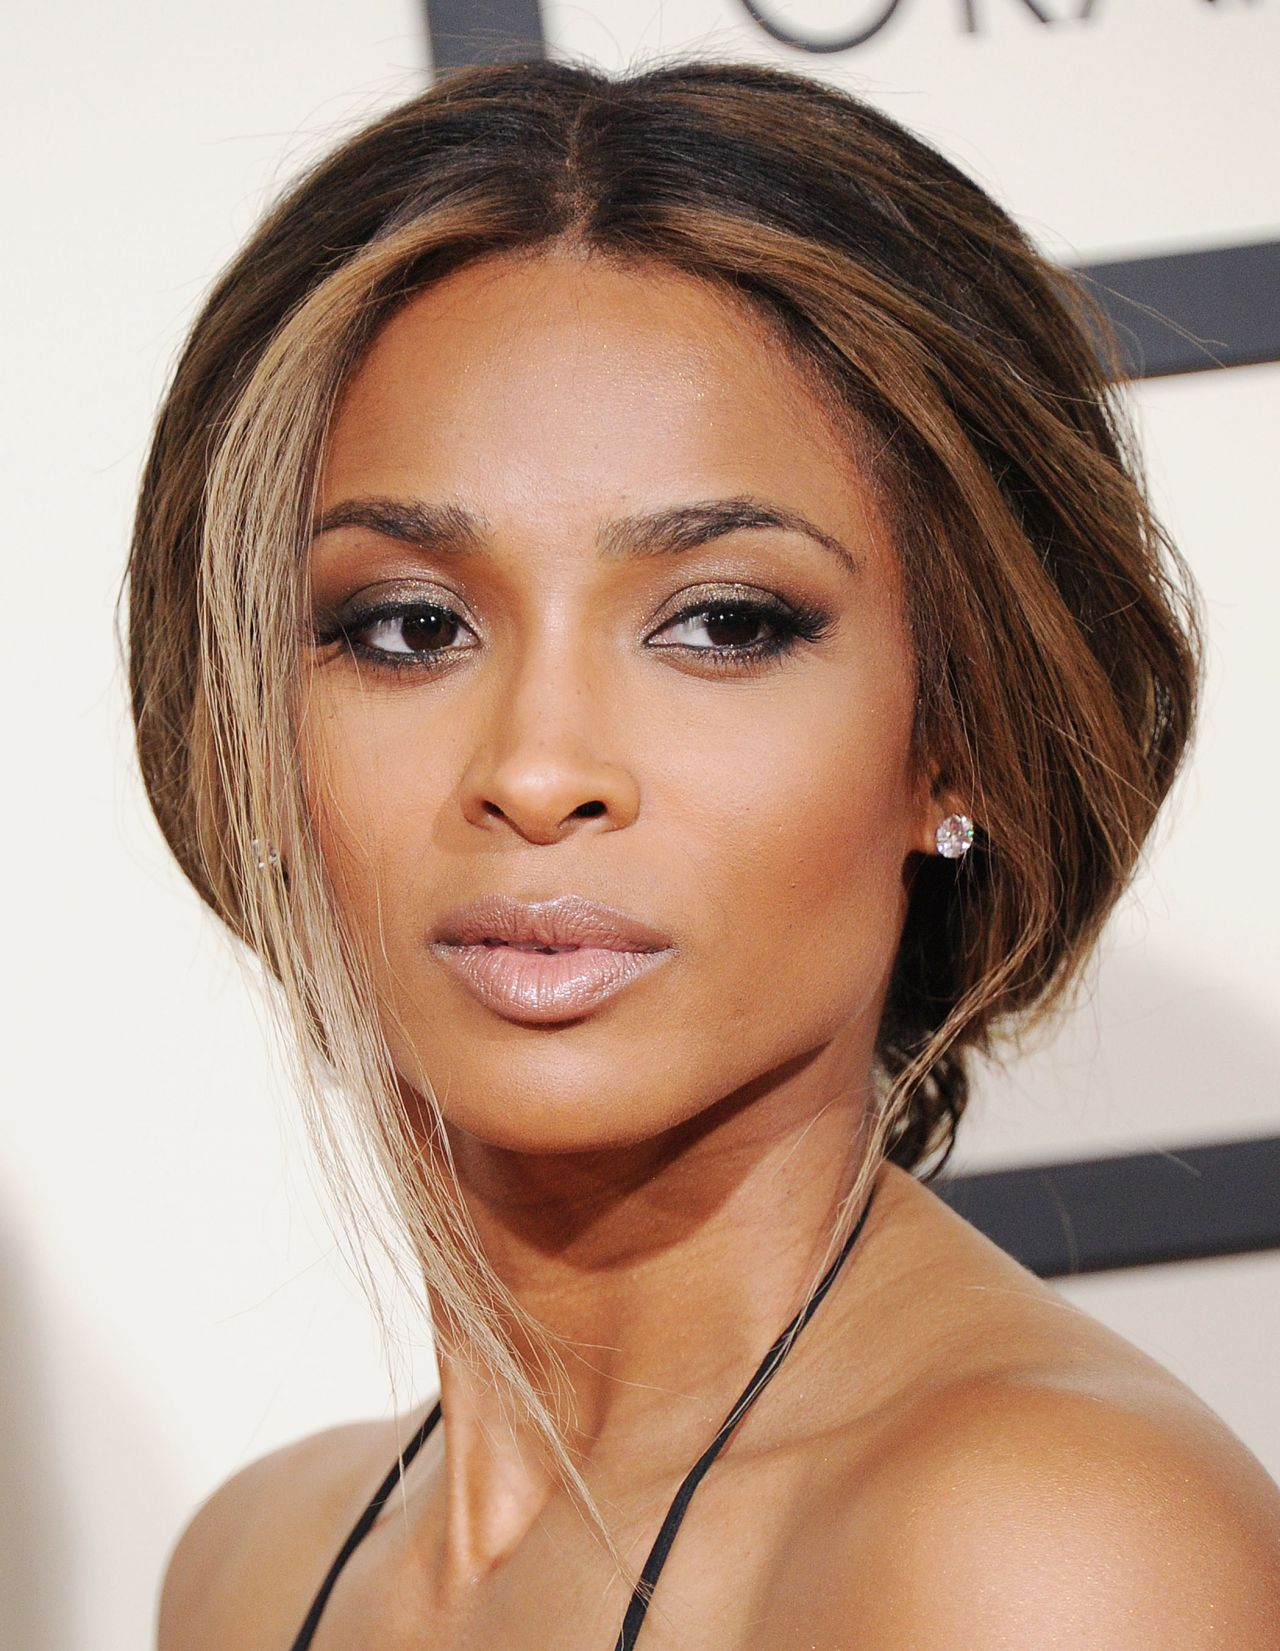 ciara-2016-grammy-awards-in-los-angeles-ca-8